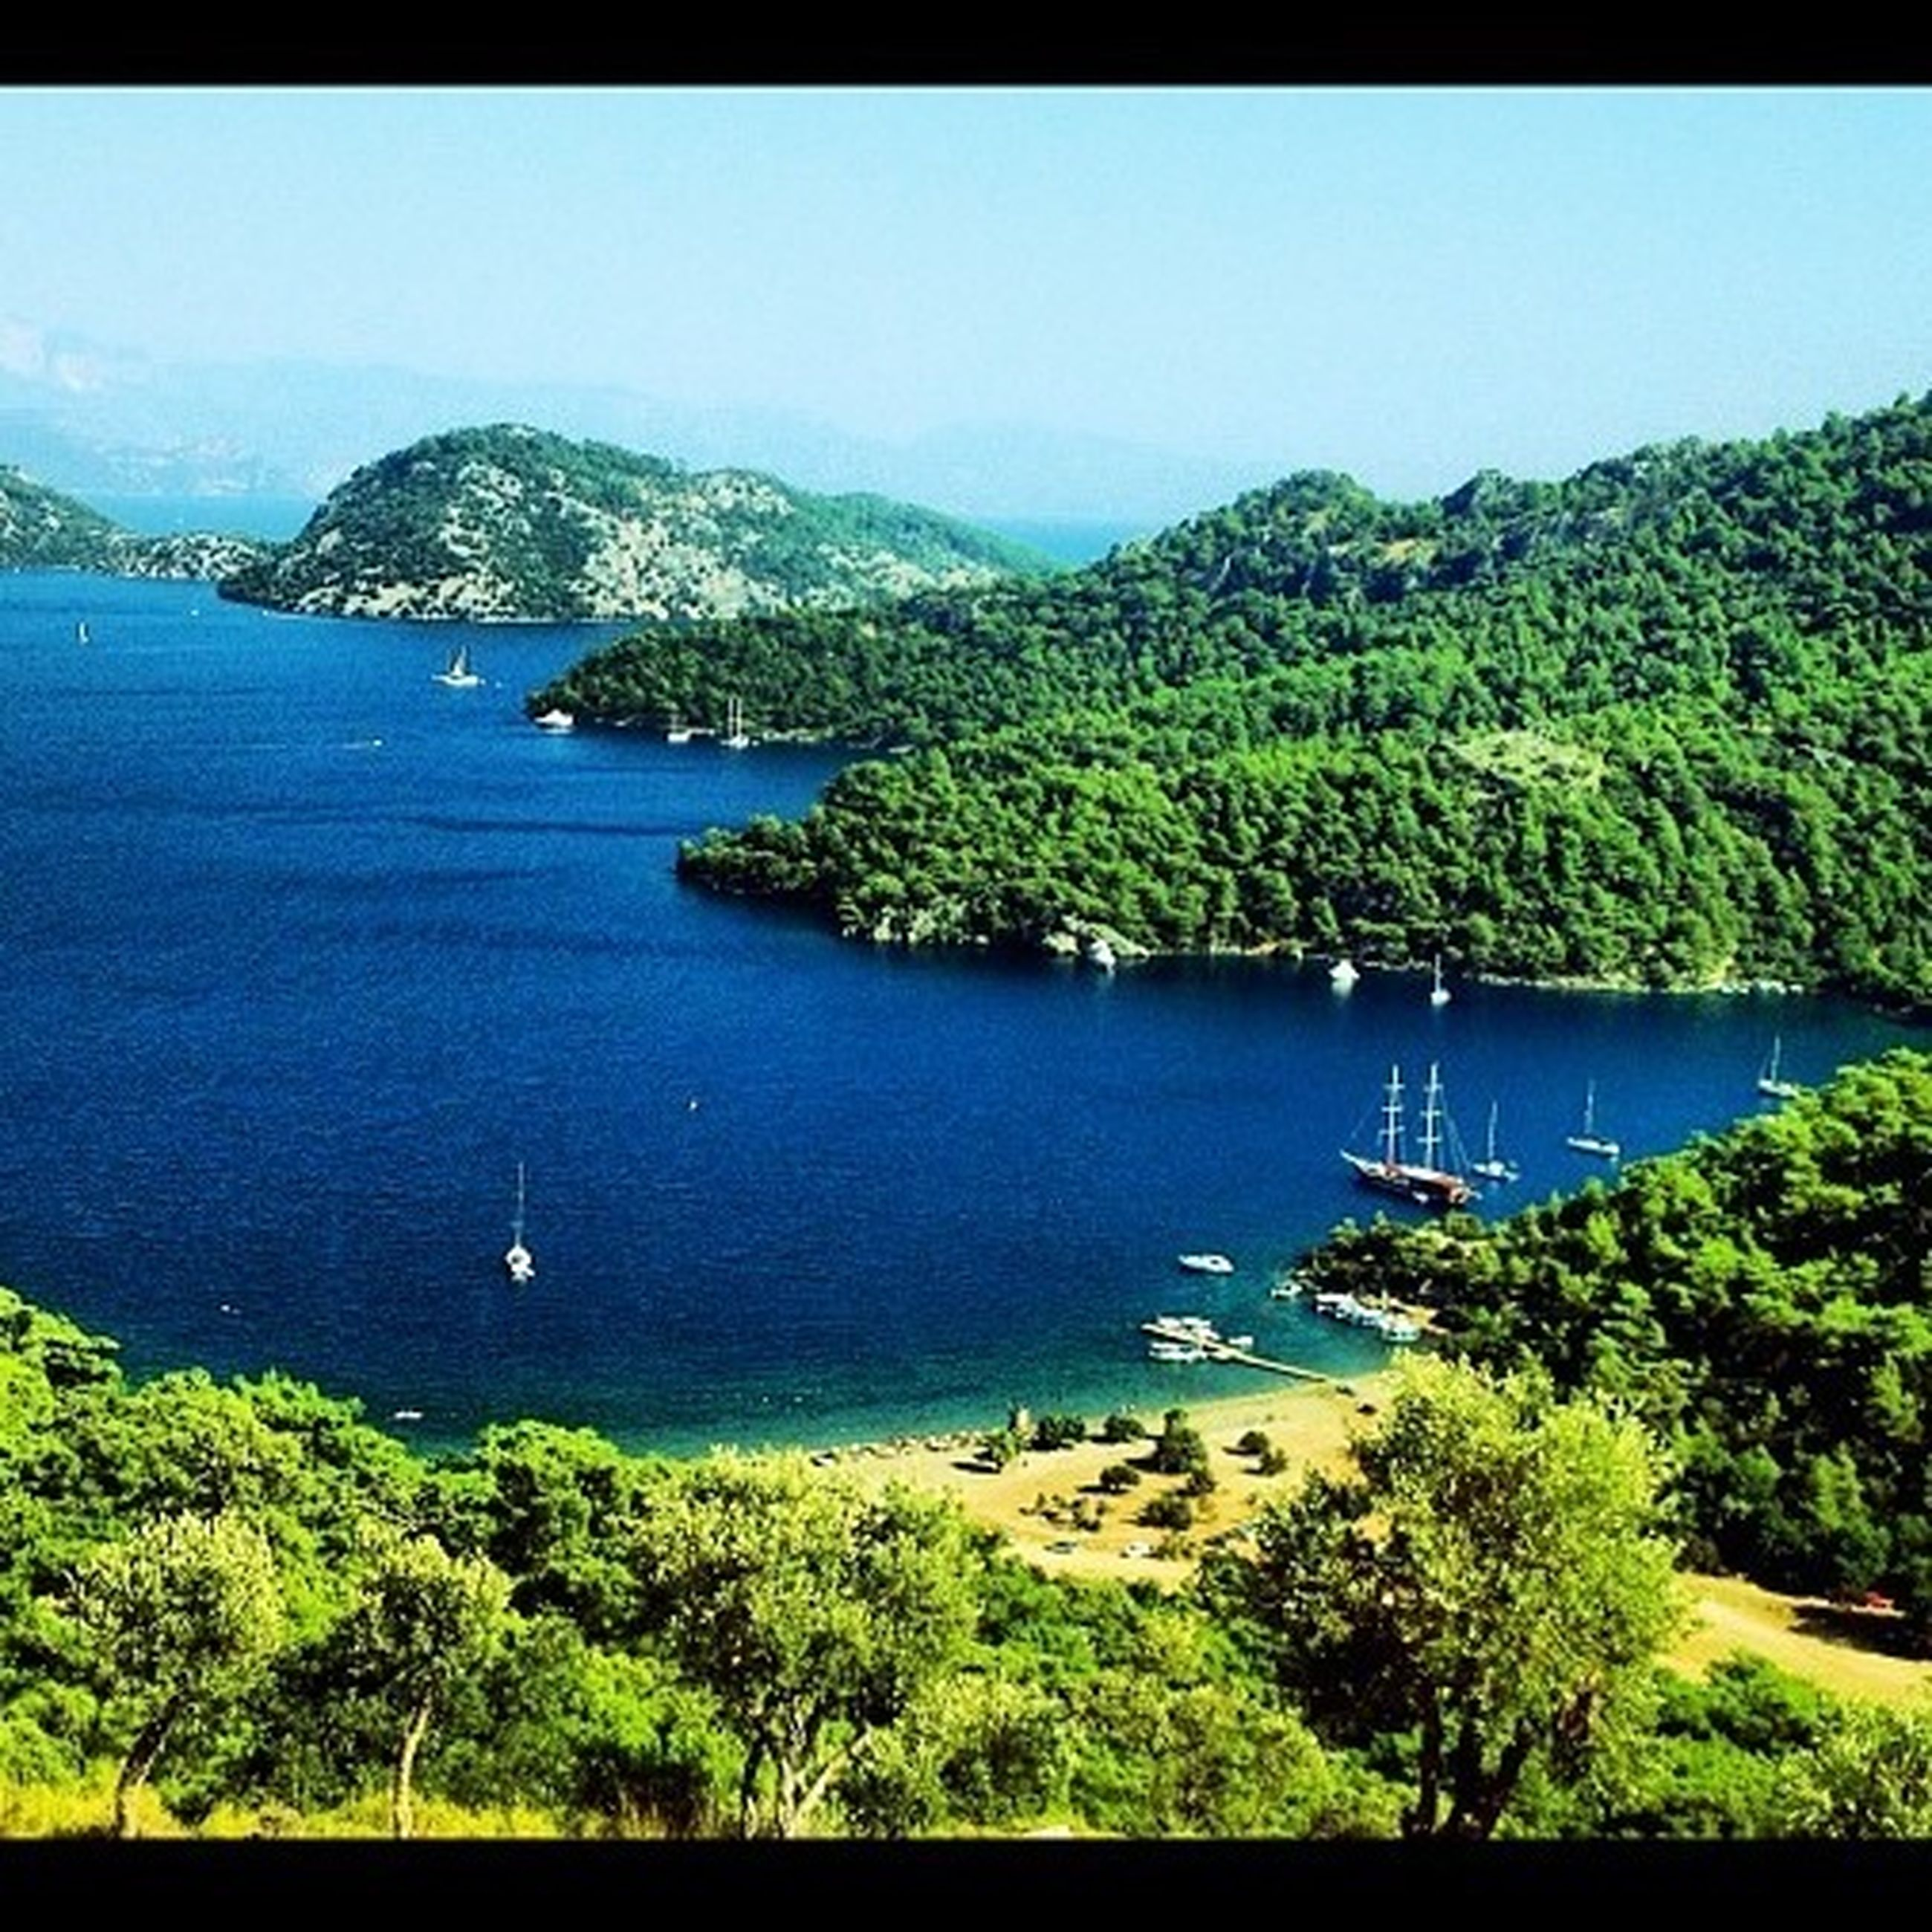 water, sea, mountain, tranquil scene, tree, clear sky, tranquility, scenics, blue, beauty in nature, nautical vessel, nature, boat, coastline, idyllic, high angle view, copy space, transportation, green color, day